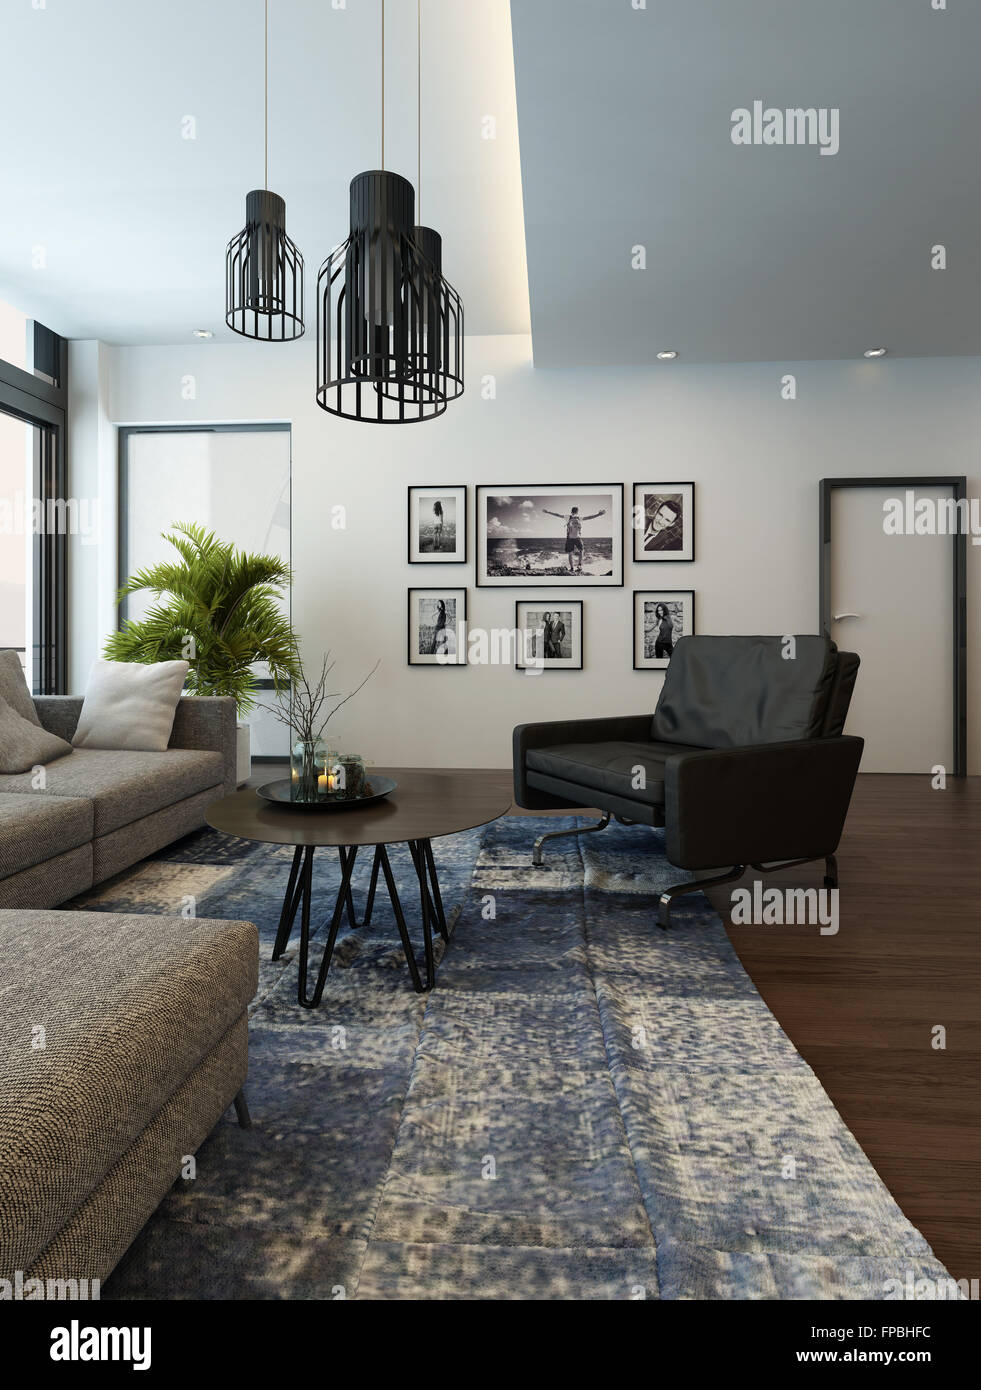 . Modern cozy living room interior with gray couch or sofa and carpet